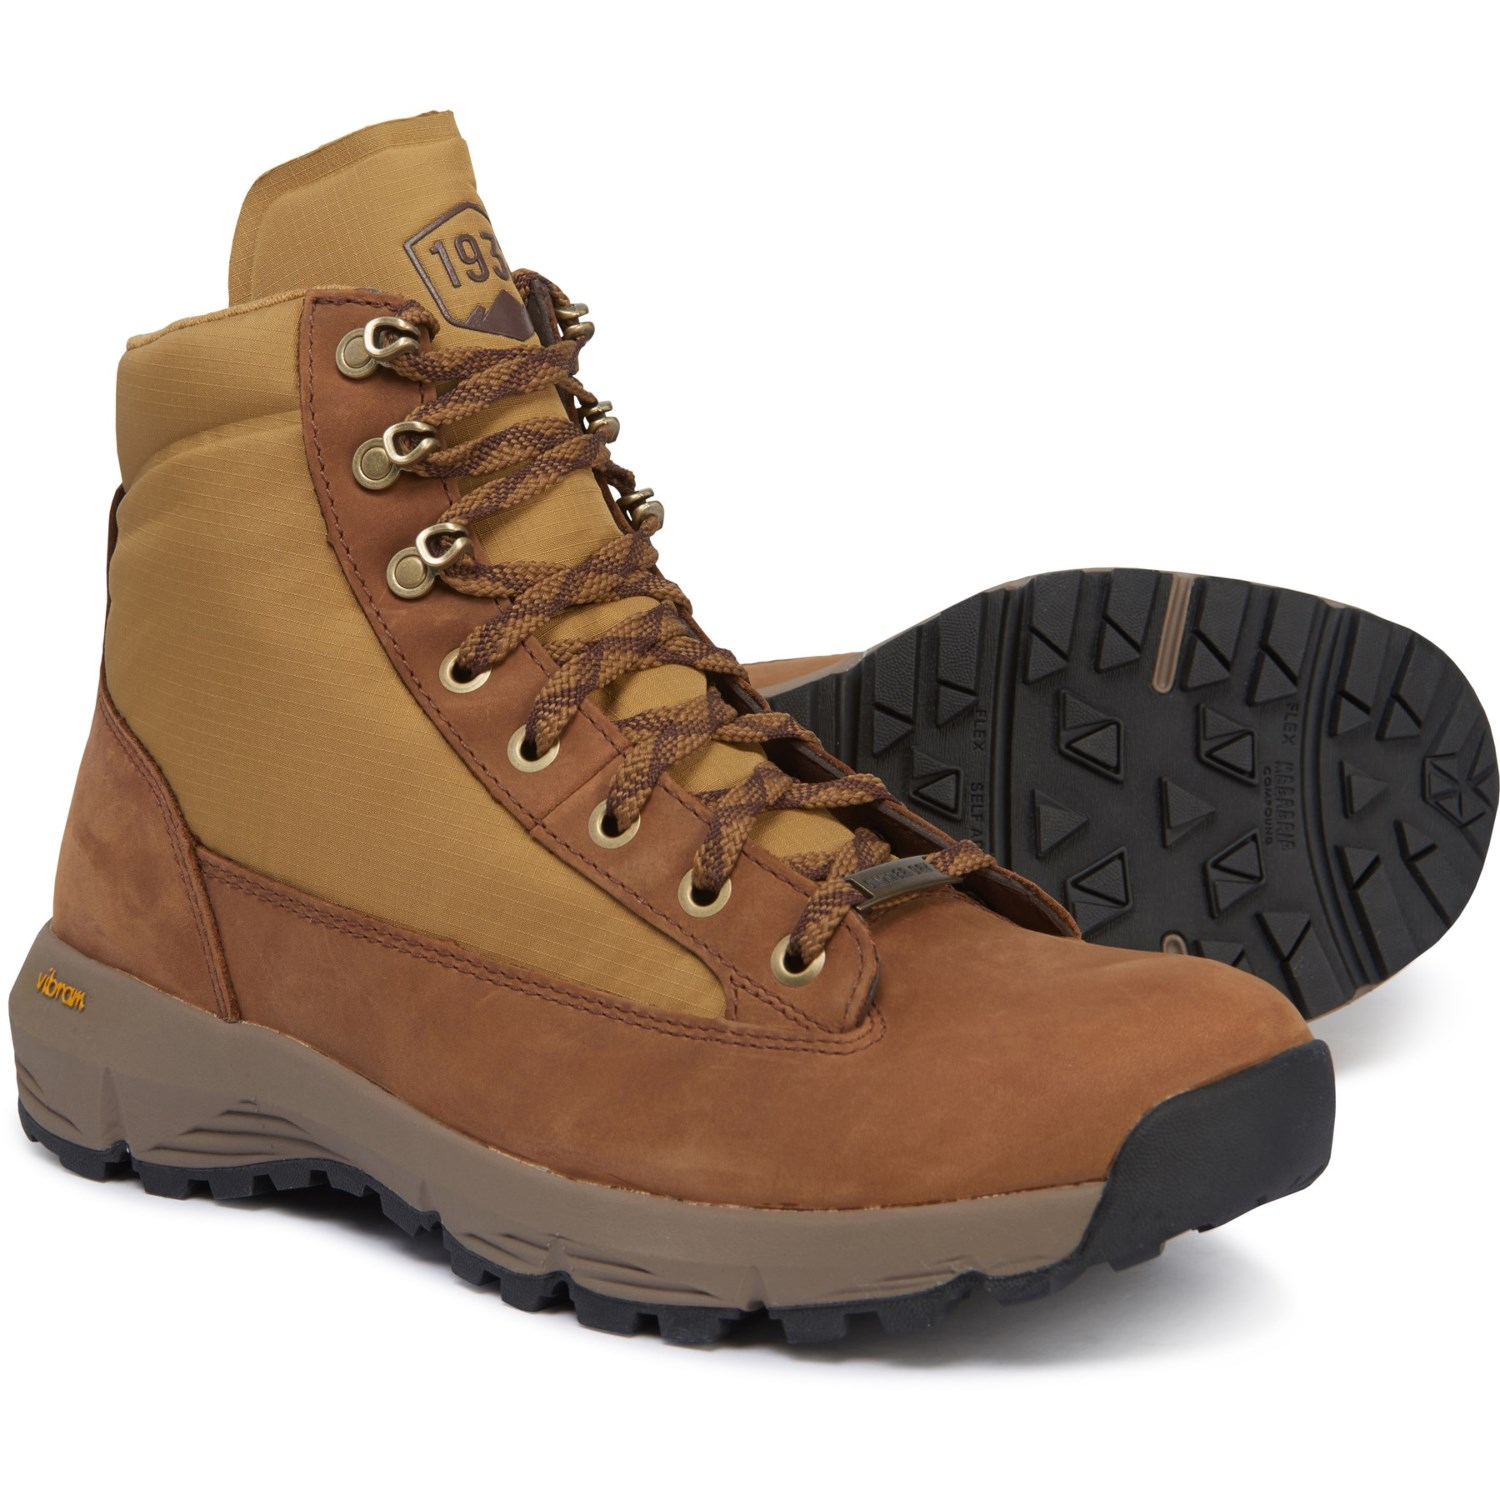 "d781884190b Danner 6"" Explorer 650 Hiking Boots (For Women) - Save 65%"